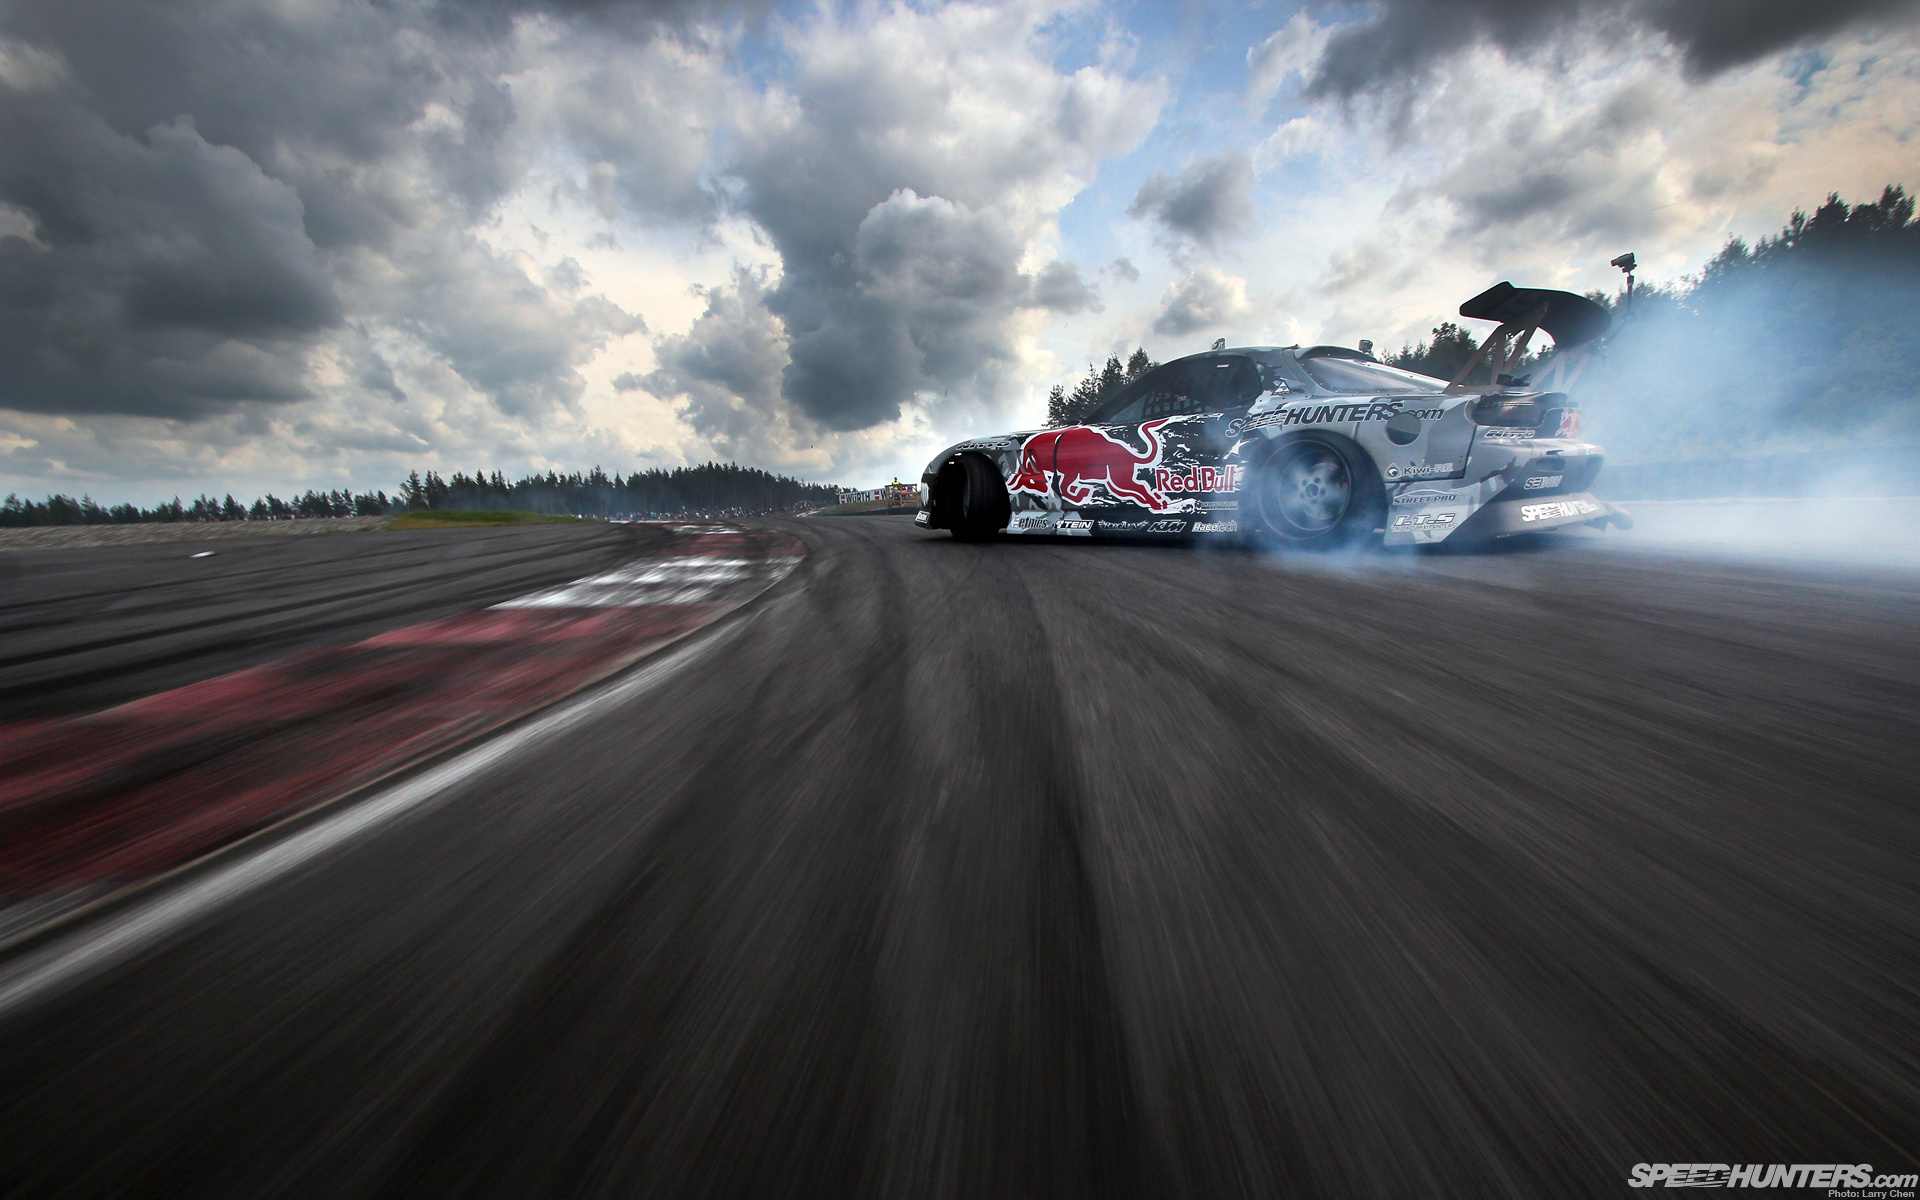 Mazda Rx7 Iphone Wallpaper Drift Full Hd Wallpaper And Background Image 1920x1200